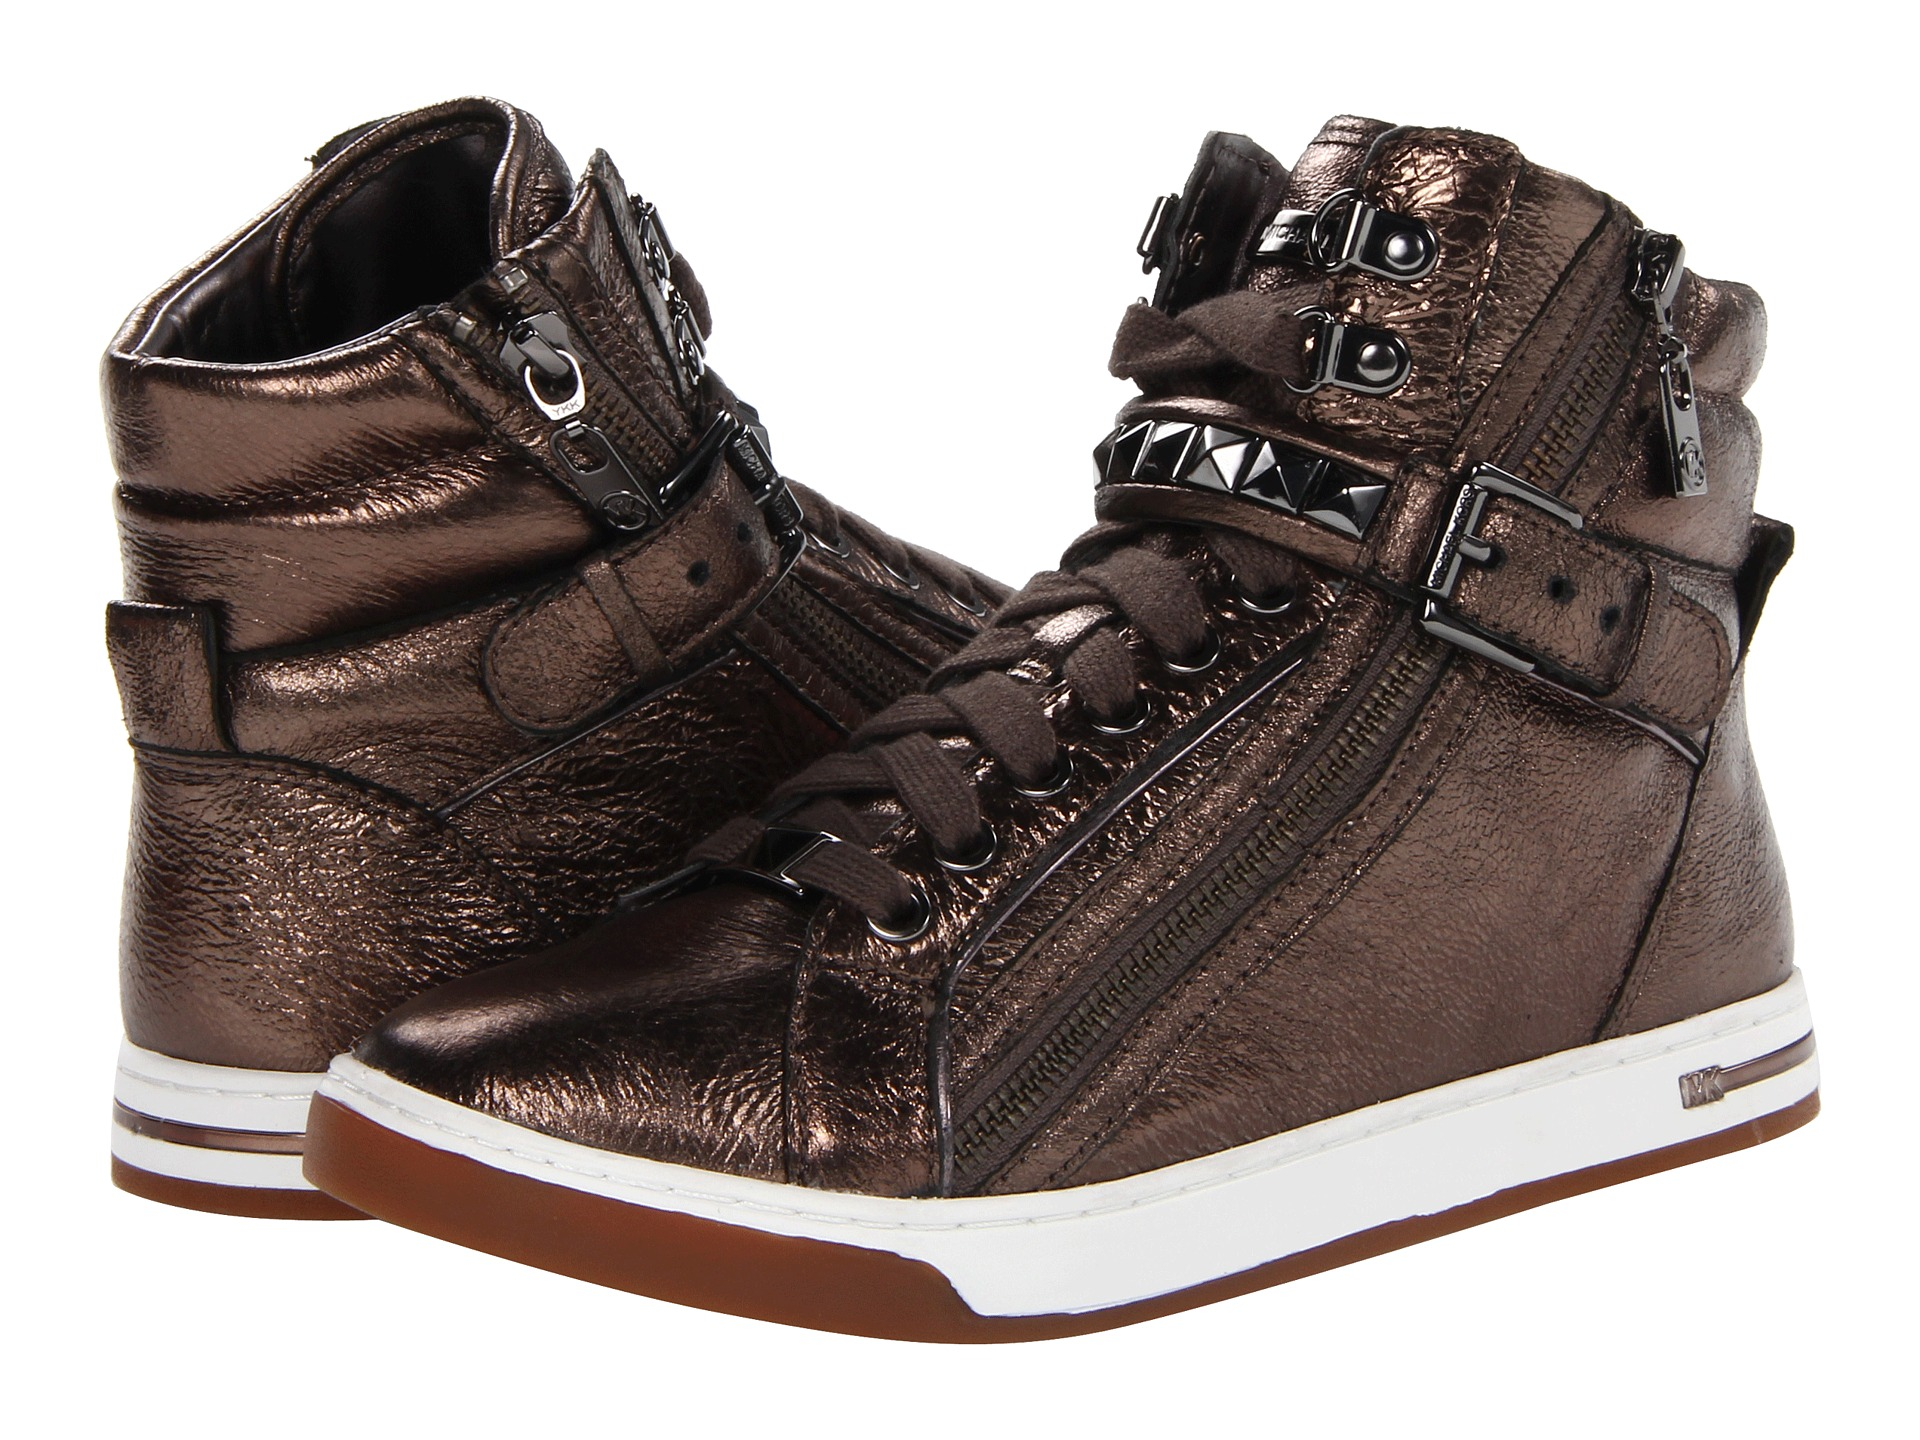 michael michael kors glam studded hi top shipped free at zappos. Black Bedroom Furniture Sets. Home Design Ideas